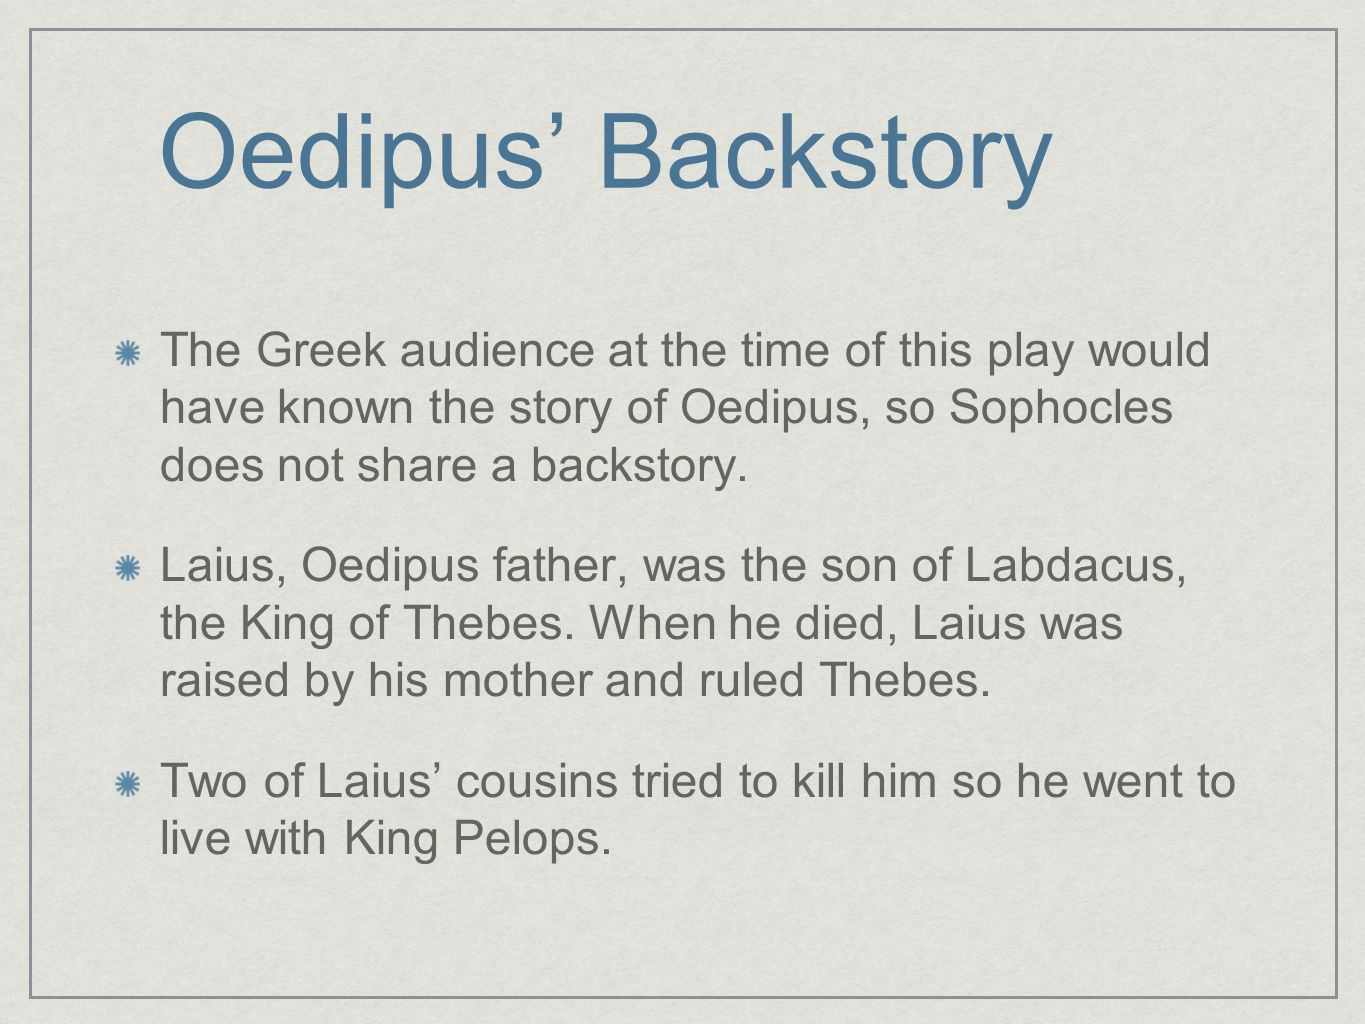 Oedipus' Backstory The Greek audience at the time of this play would have known the story of Oedipus, so Sophocles does not share a backstory.